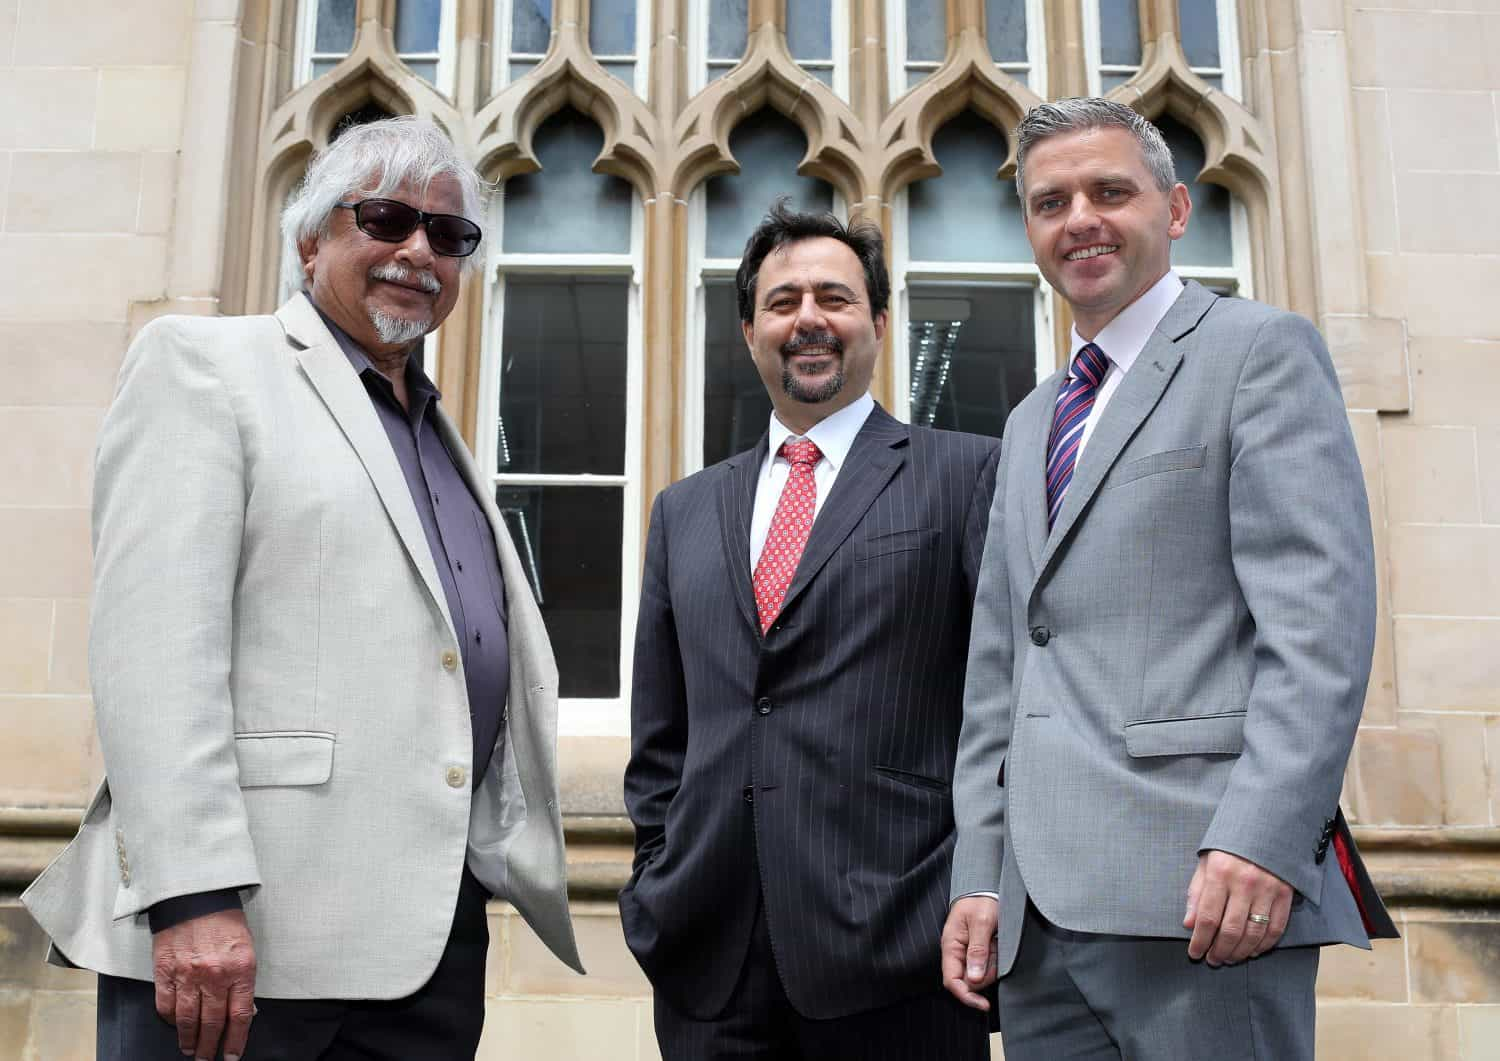 Dr Arun Gandhi calls for 'culture of peace' at John Hume and Thomas P. O'Neill Chair in Peace event